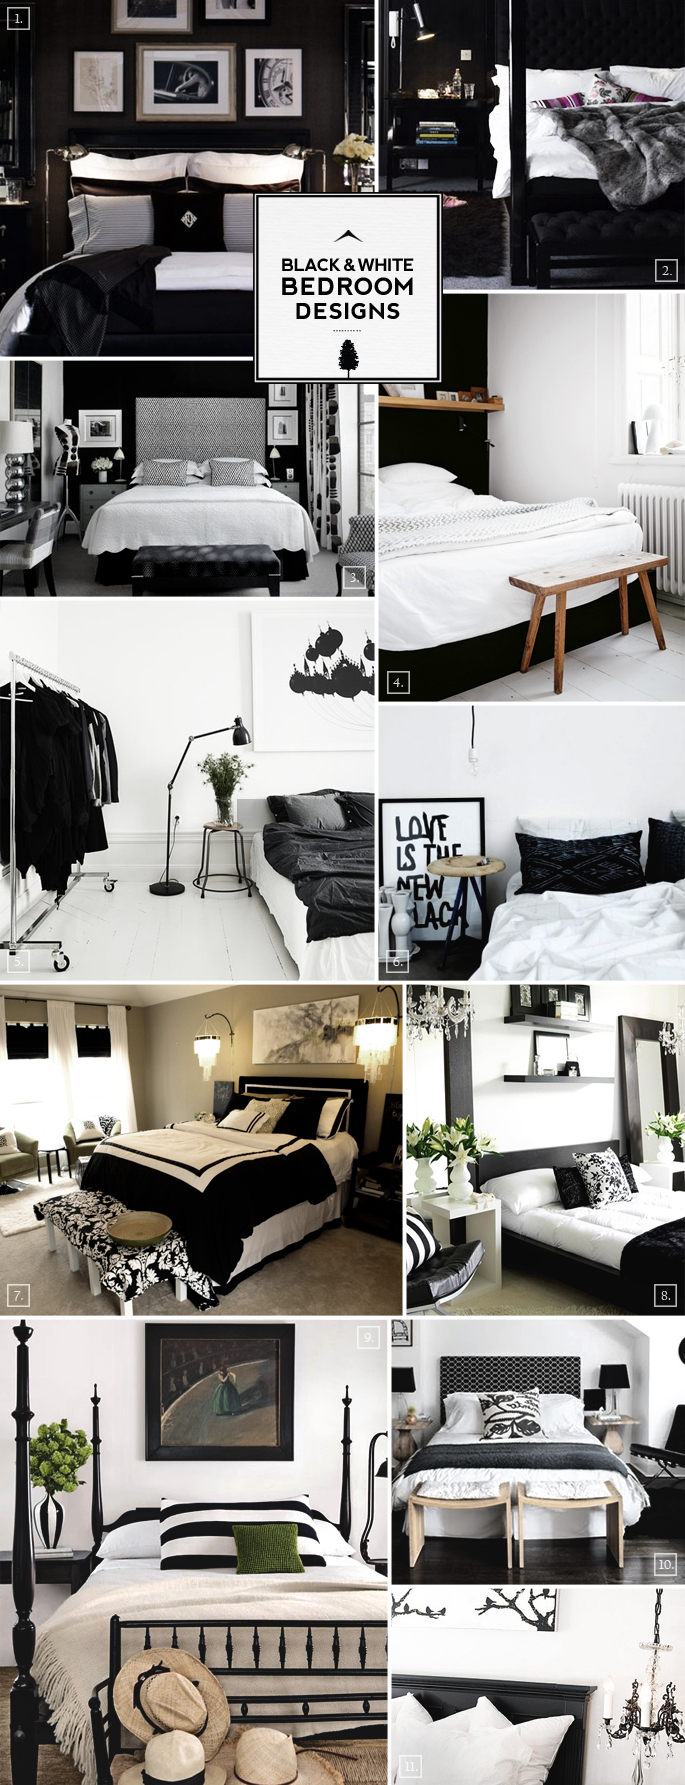 Black and white bedroom designs and decor ideas home - Black and white bedroom decor ideas ...